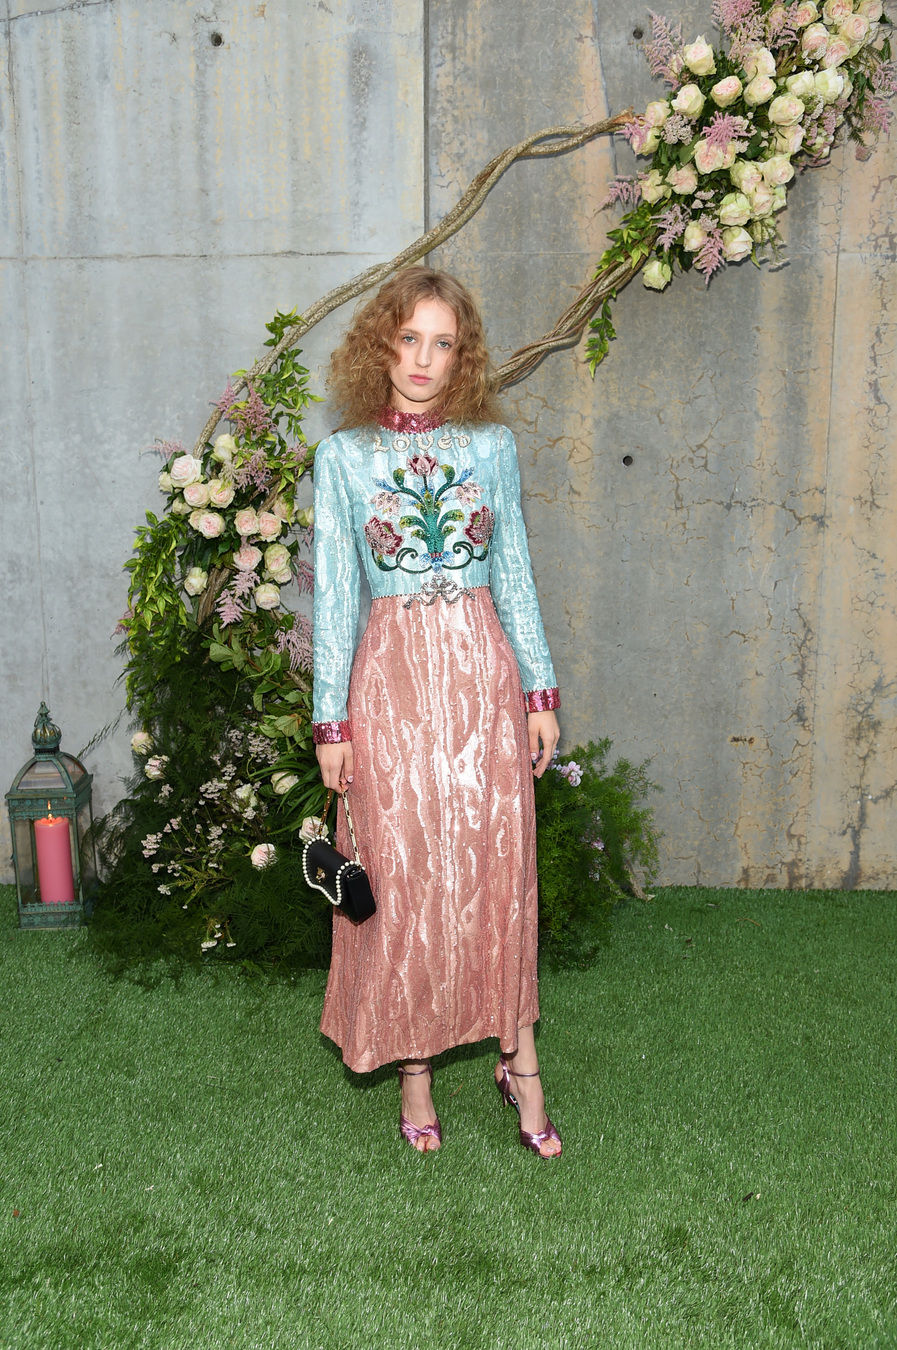 NEW YORK, NY - MAY 02: Petra Collins attends the Gucci Bloom Fragrance Launch at MoMA PS.1 on May 2, 2017 in New York City. (Photo by Jamie McCarthy/Getty Images for Gucci)